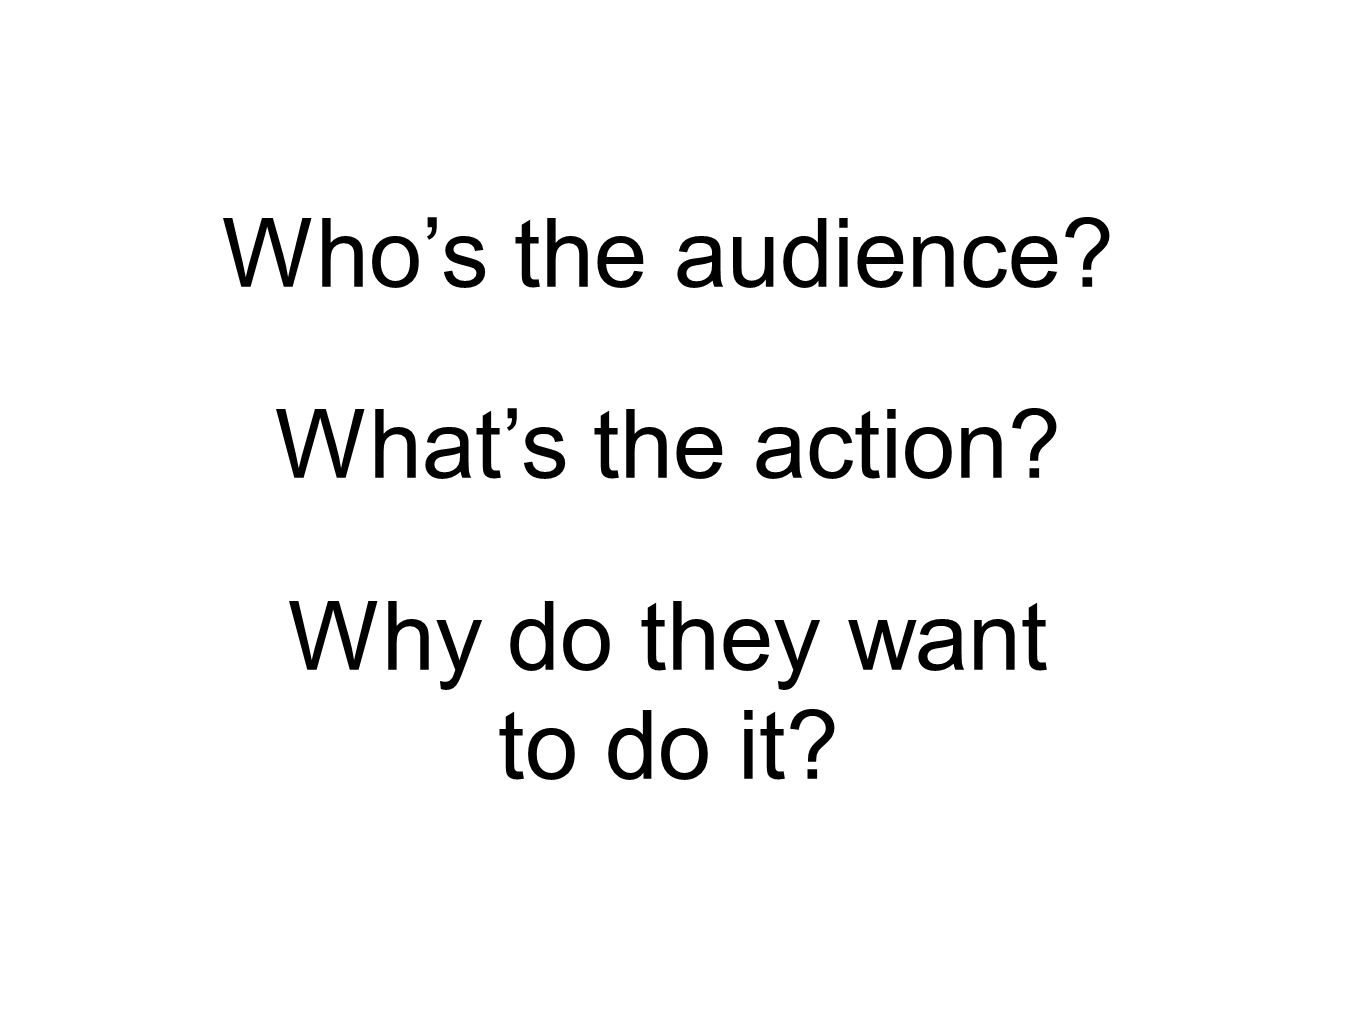 Who's the audience What's the action Why do they want to do it